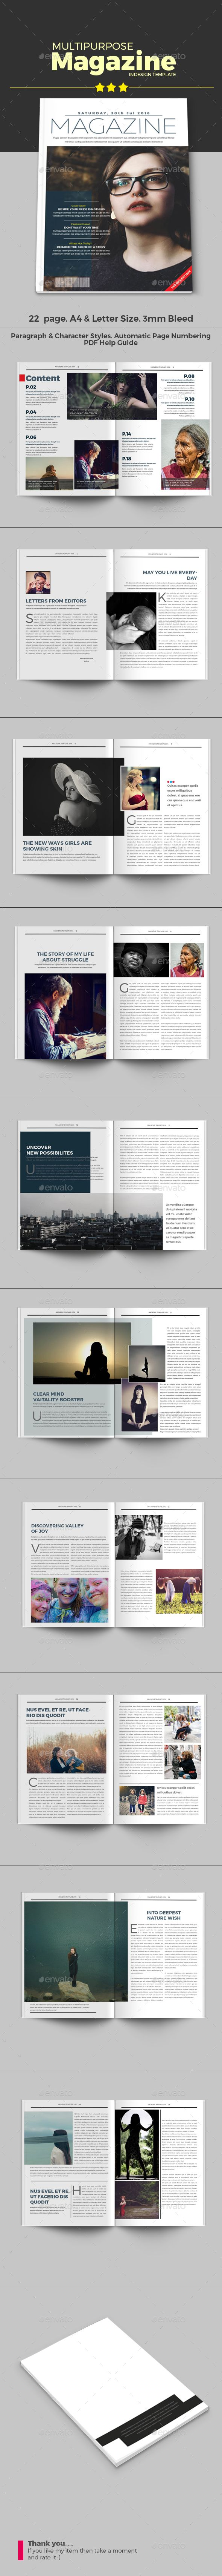 Multipurpose Magazine — InDesign Template #corporate magazine #technology #magazine design #architecture #modern • Download ➝ https://graphicriver.net/item/multipurpose-magazine-template/17838885?ref=pxcr